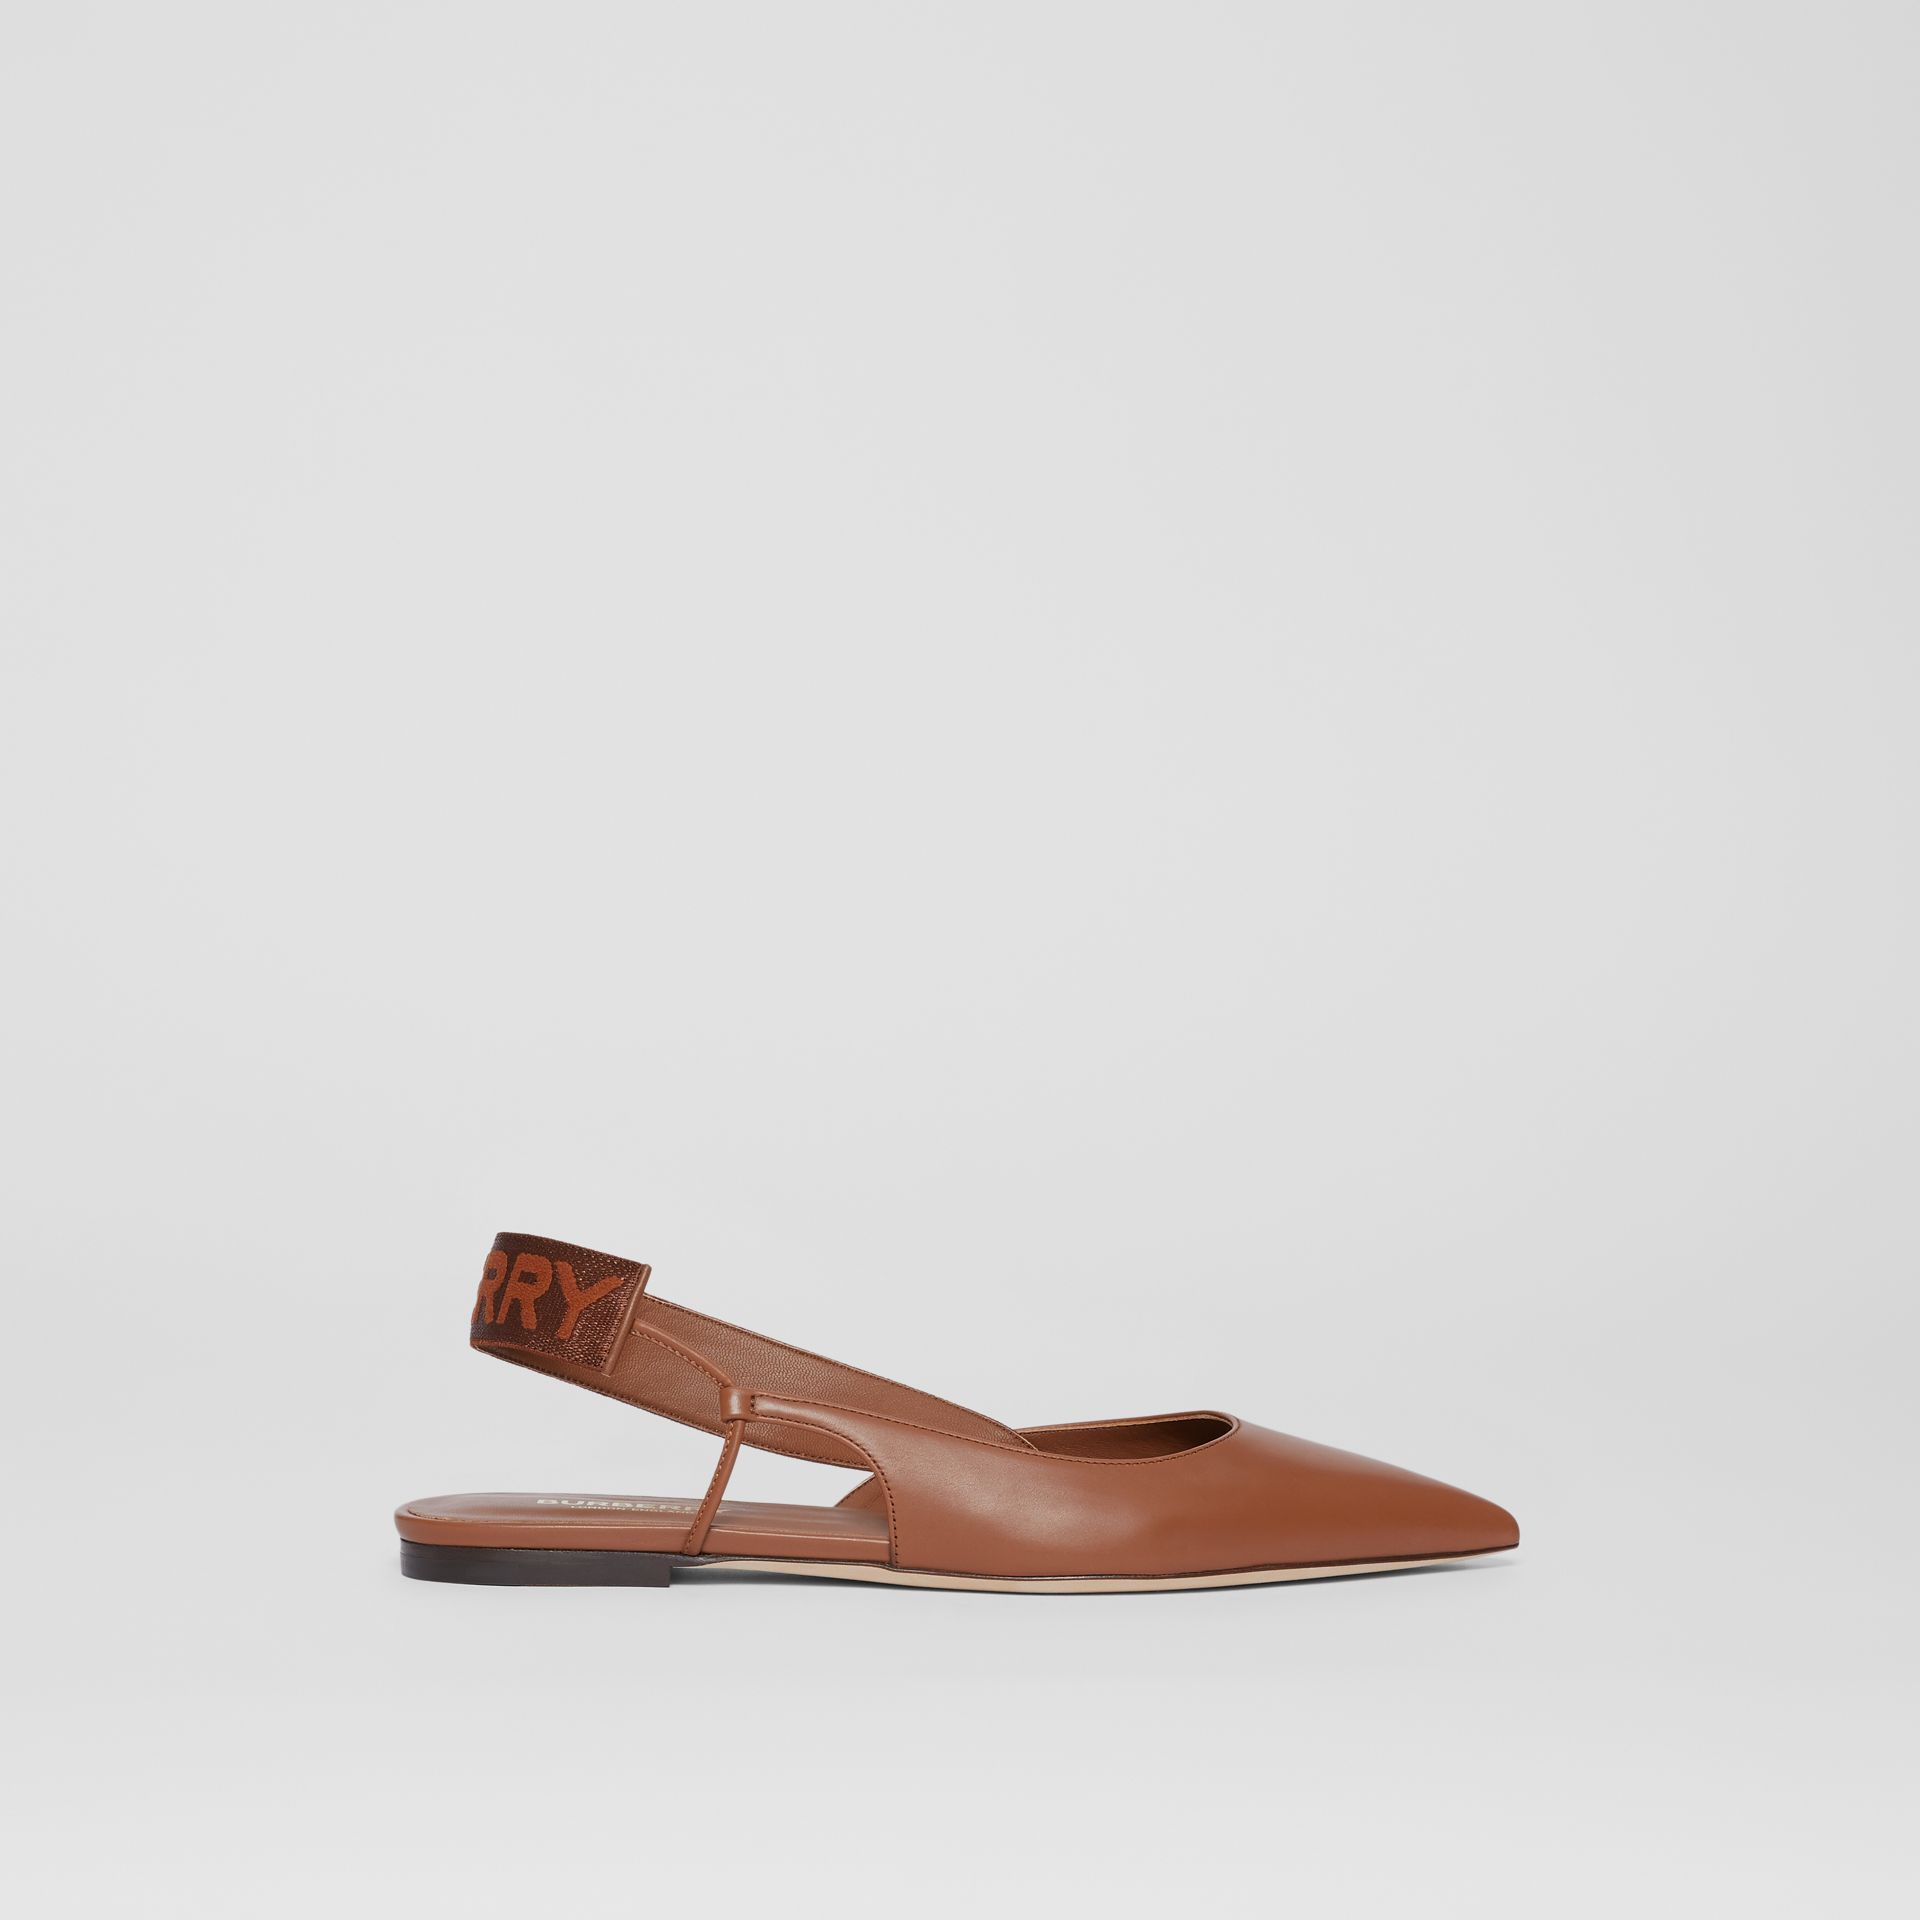 Logo Detail Leather Slingback Flats in Tan - Women | Burberry - gallery image 5